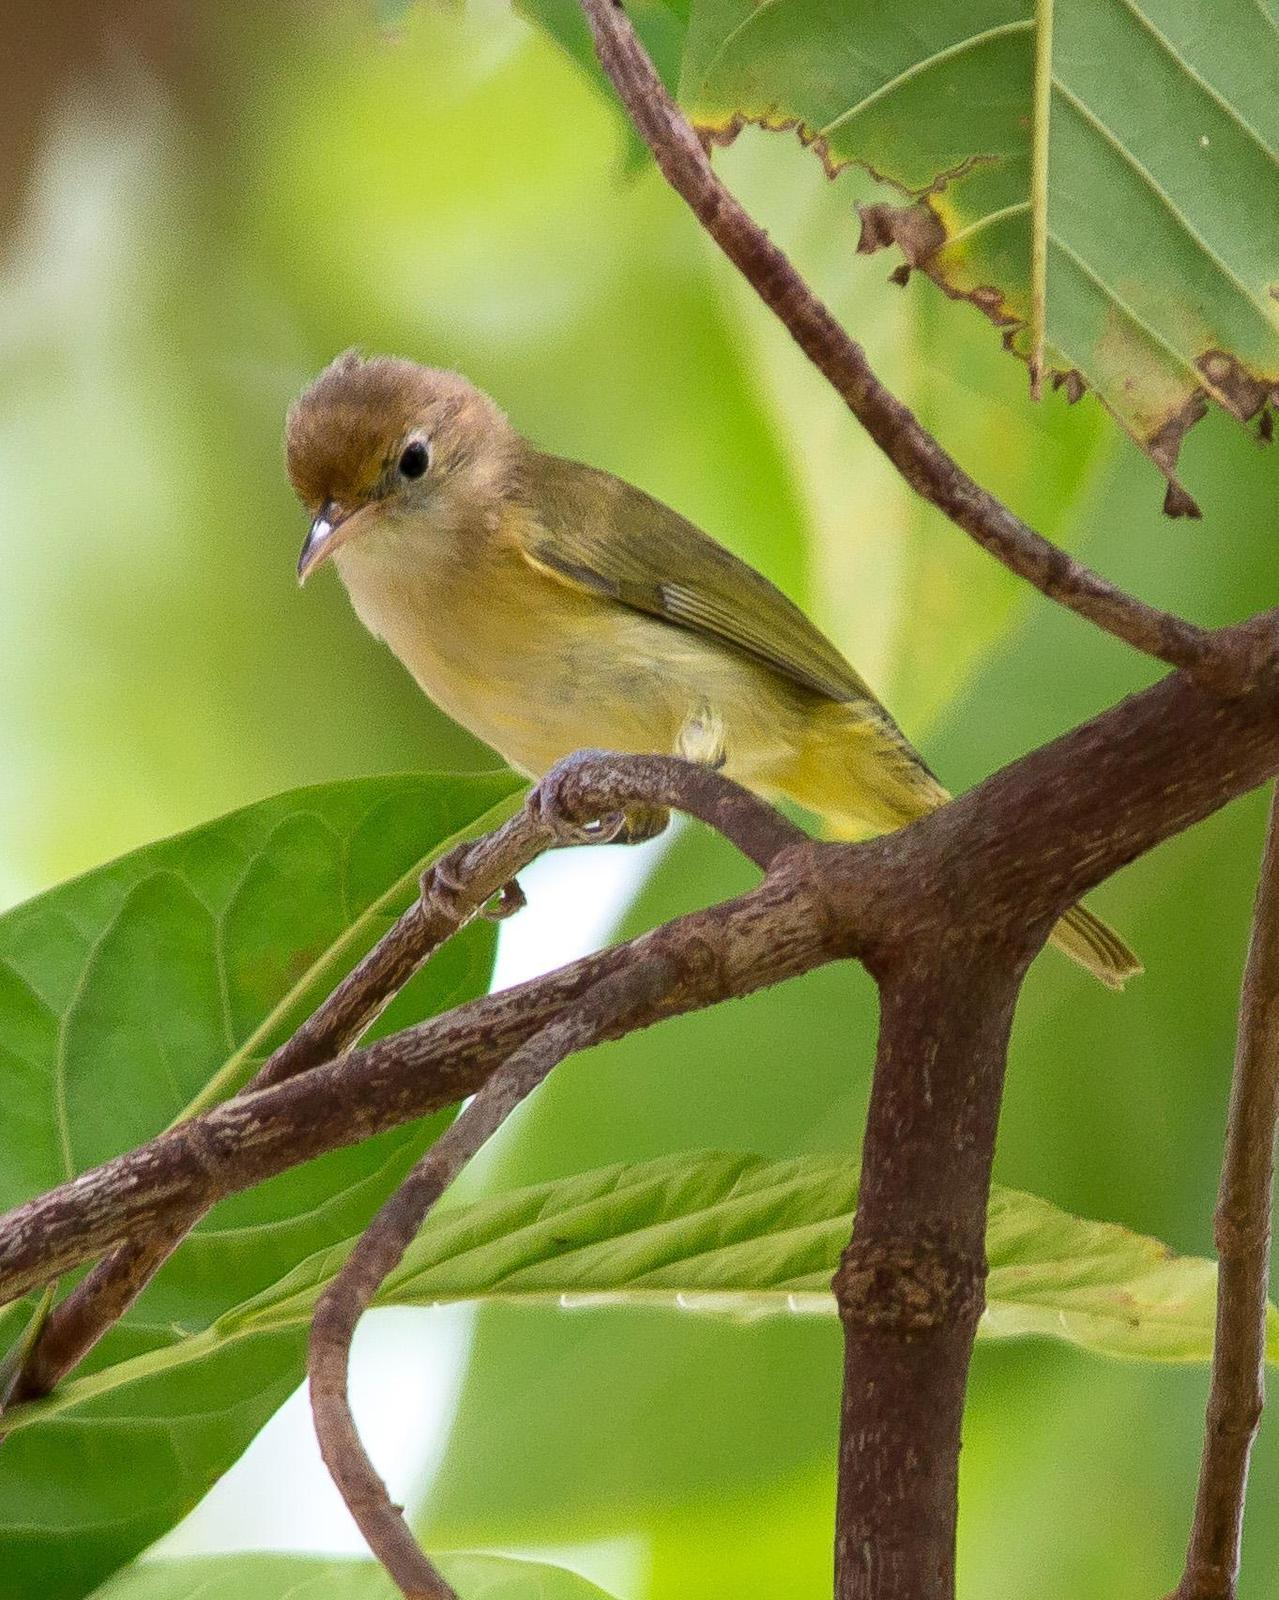 Golden-fronted Greenlet Photo by Marie-France Rivard